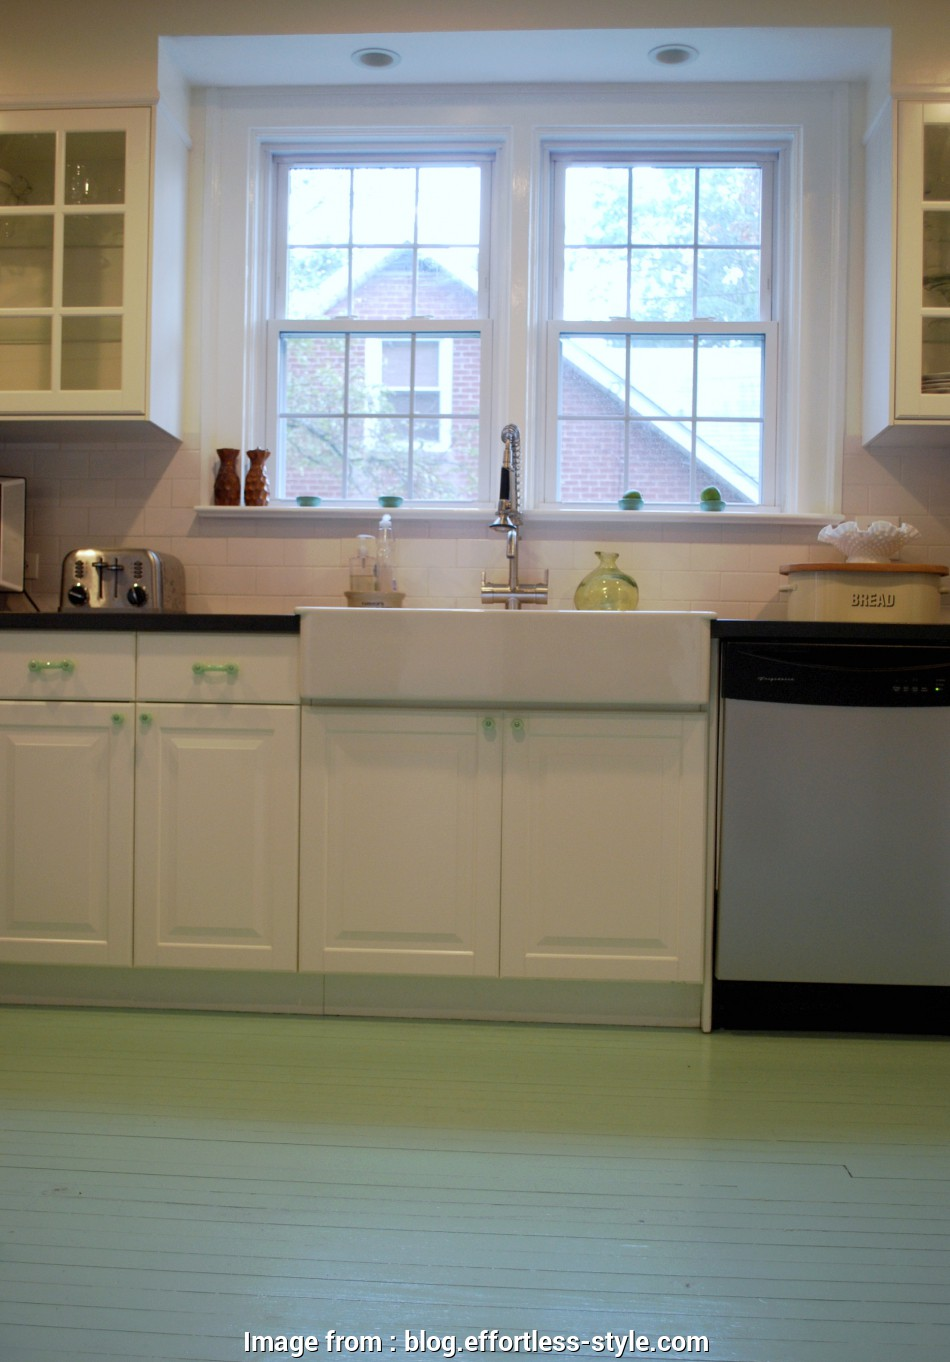 how to install recessed lighting over kitchen sink ... adding some pendant lights above, kitchen sink. Here is, before: Nothing 12 Most How To Install Recessed Lighting Over Kitchen Sink Images